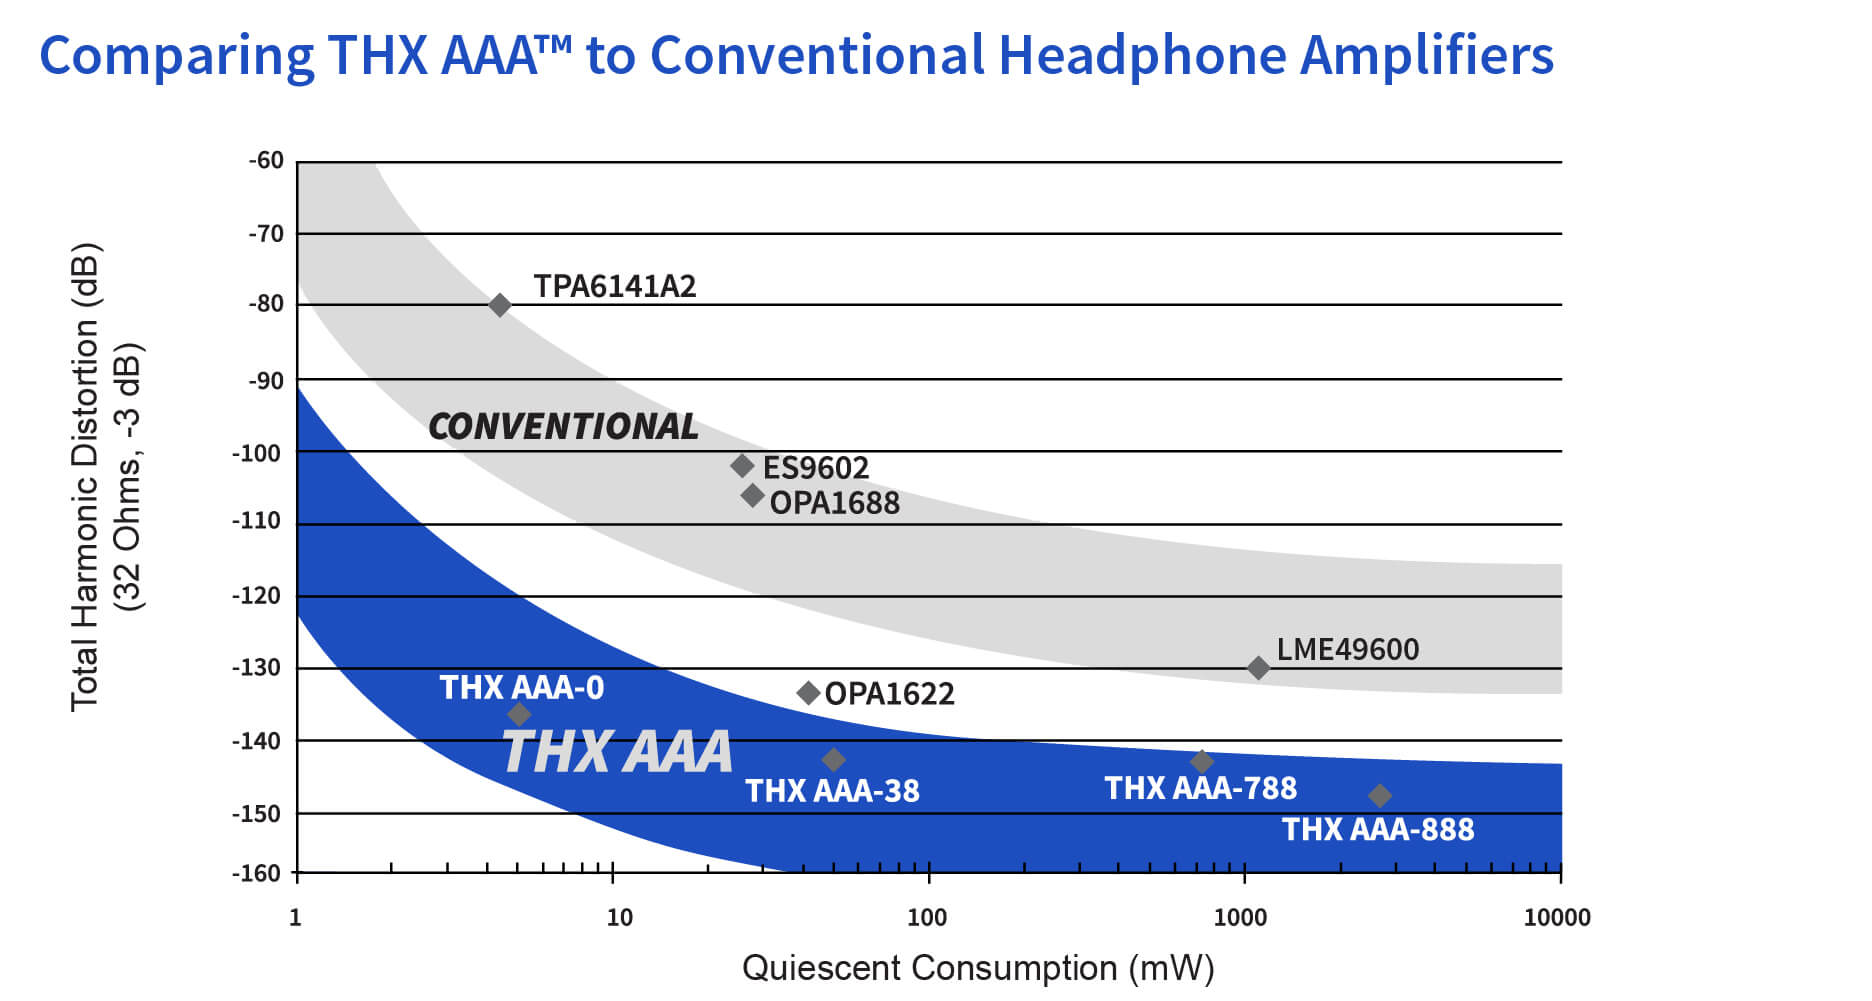 Graph comparing THX AAA to other headphone amplifiers